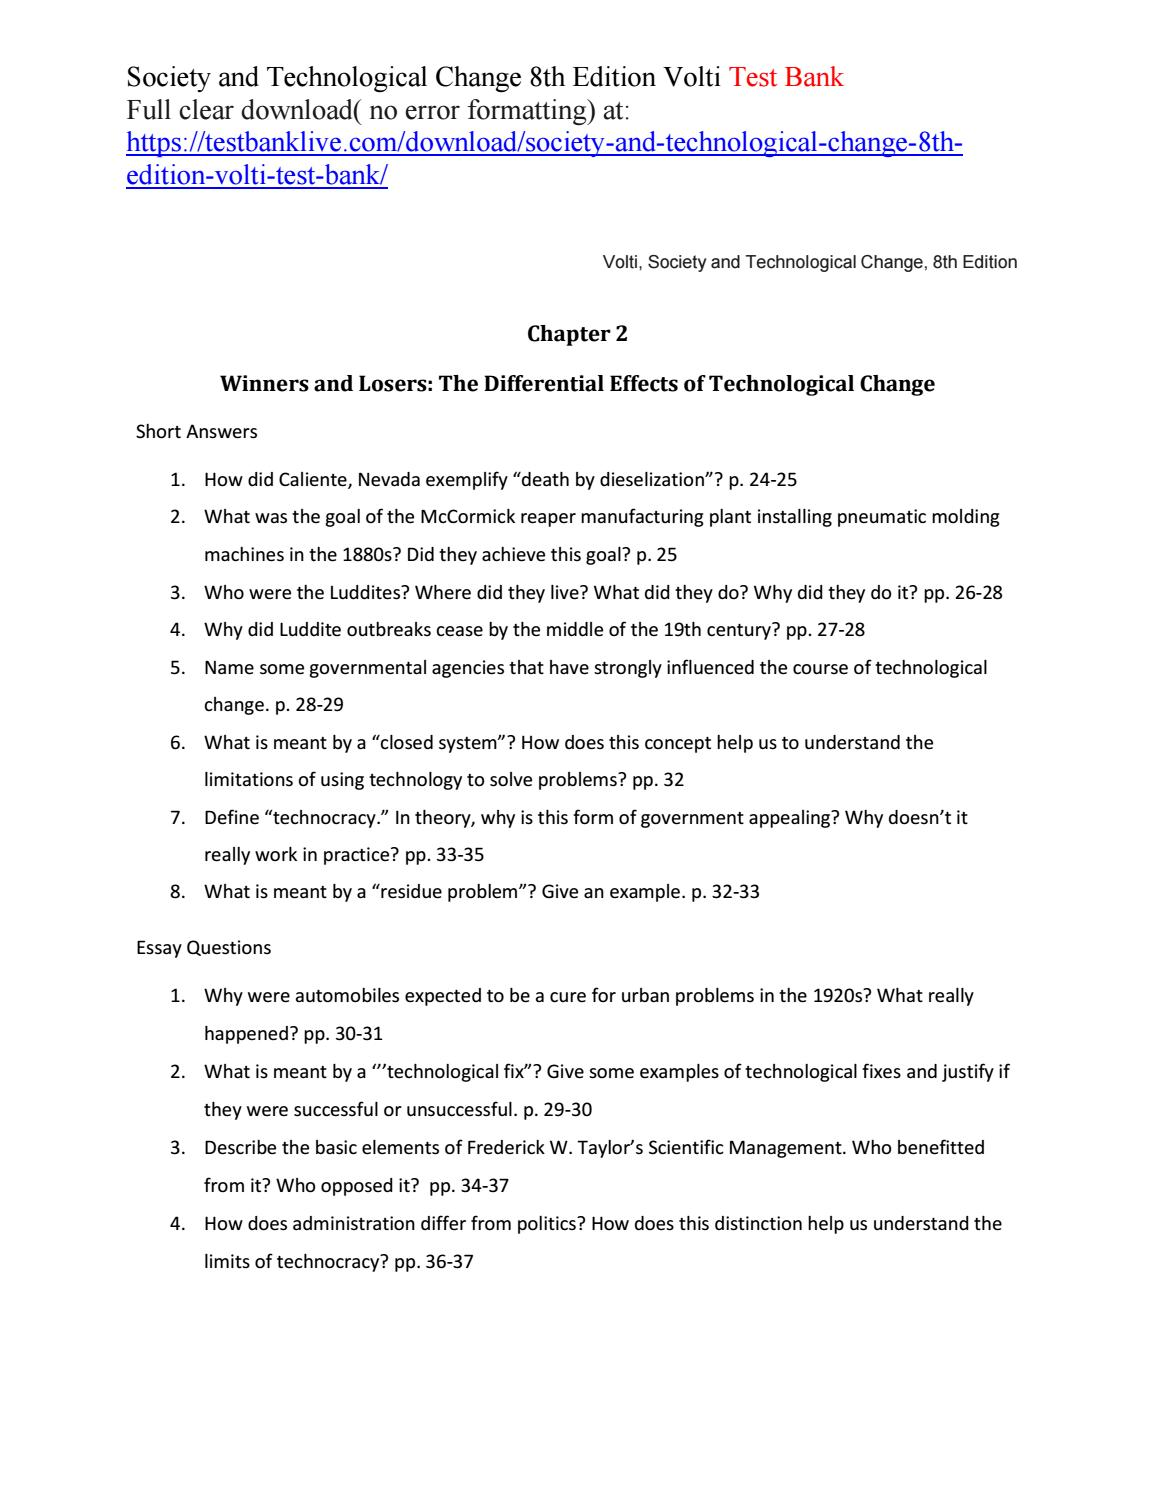 Society and technological change 8th edition volti test bank